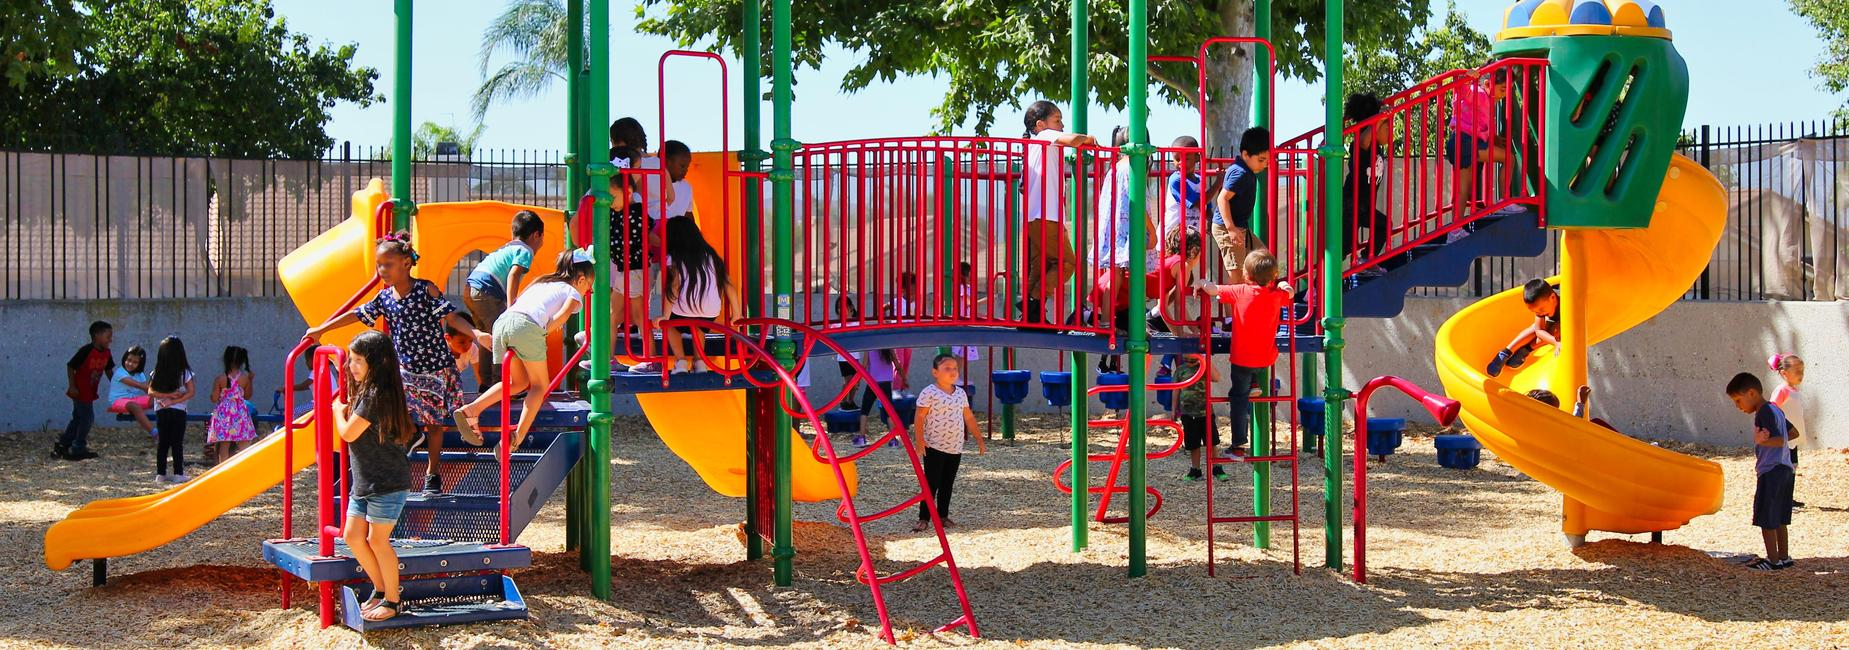 Students playing on a playground